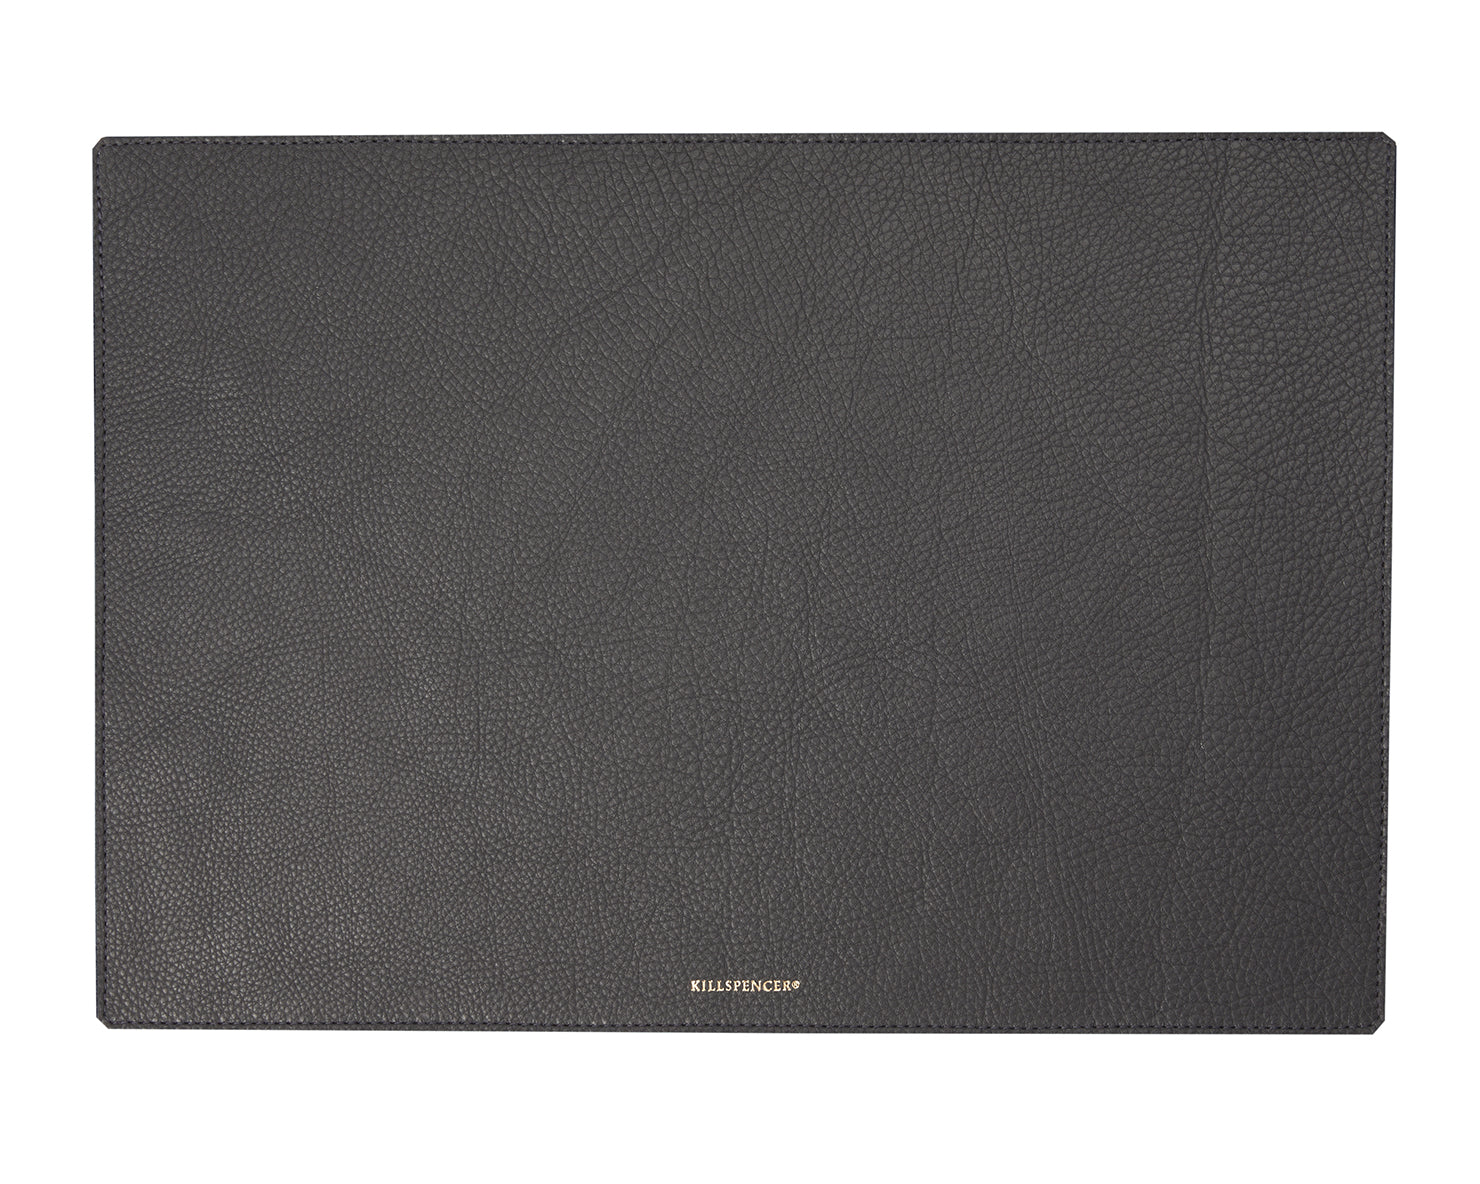 VALET TRAY MAT | KILLSPENCER® - Charcoal Grey Leather Large